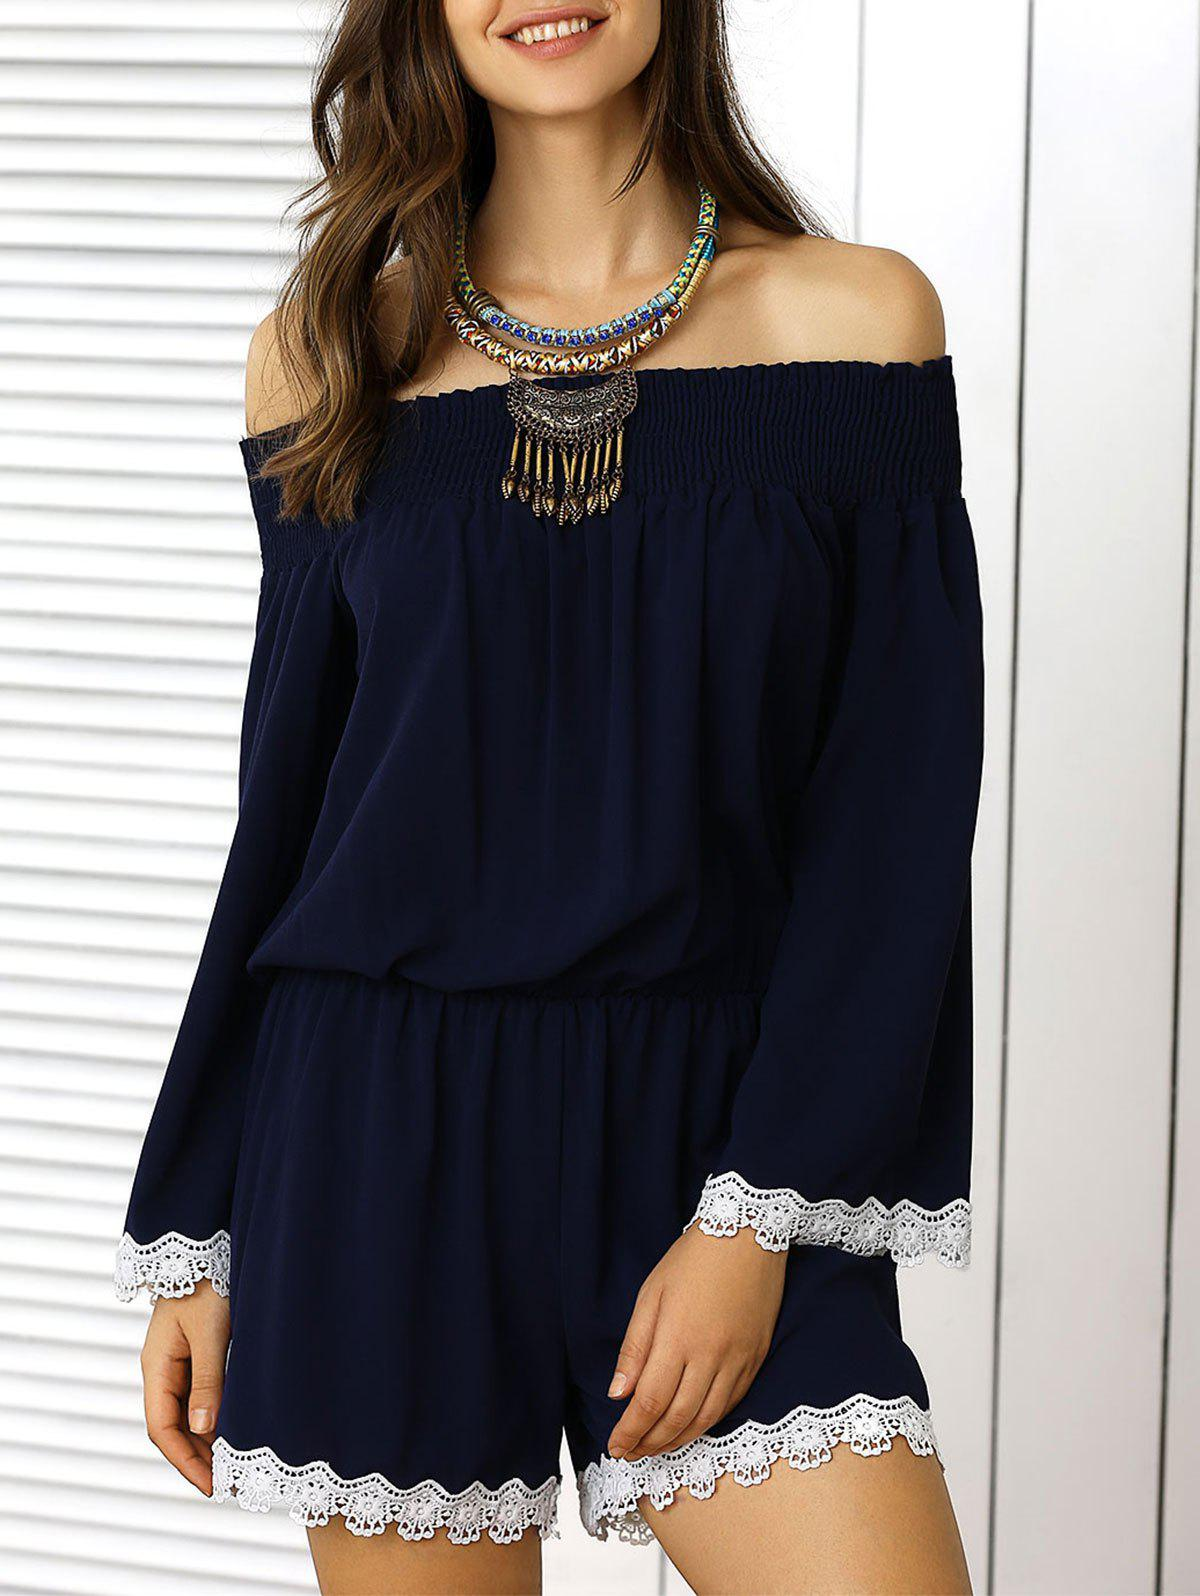 Off The Shoulder Lace Panel Pants Romper - DEEP BLUE XL